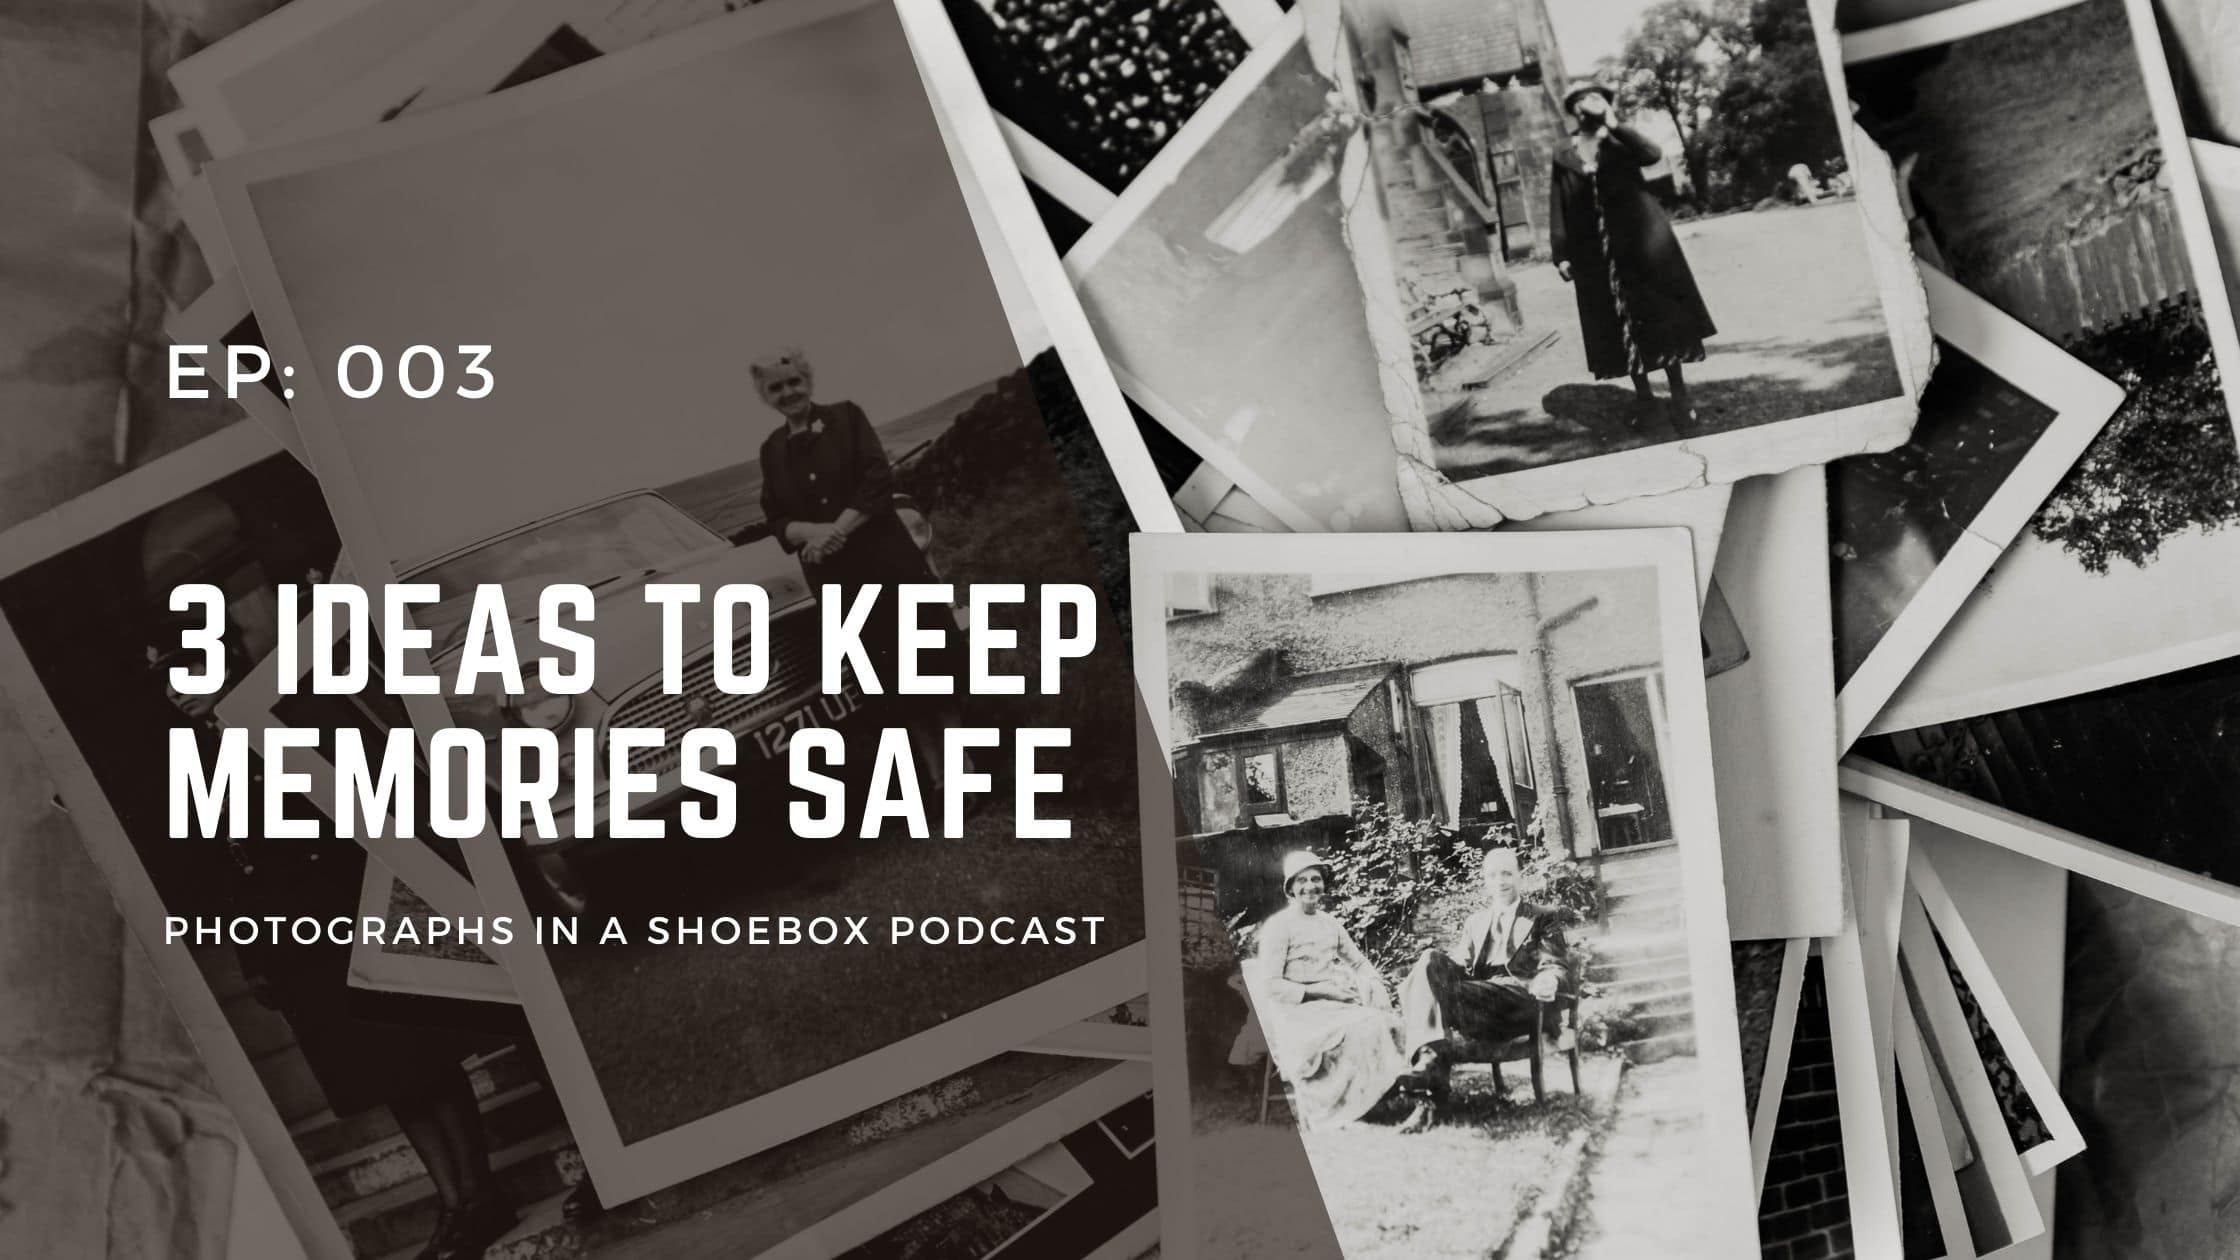 artwork for photographs in a shoebox podcast episode 3